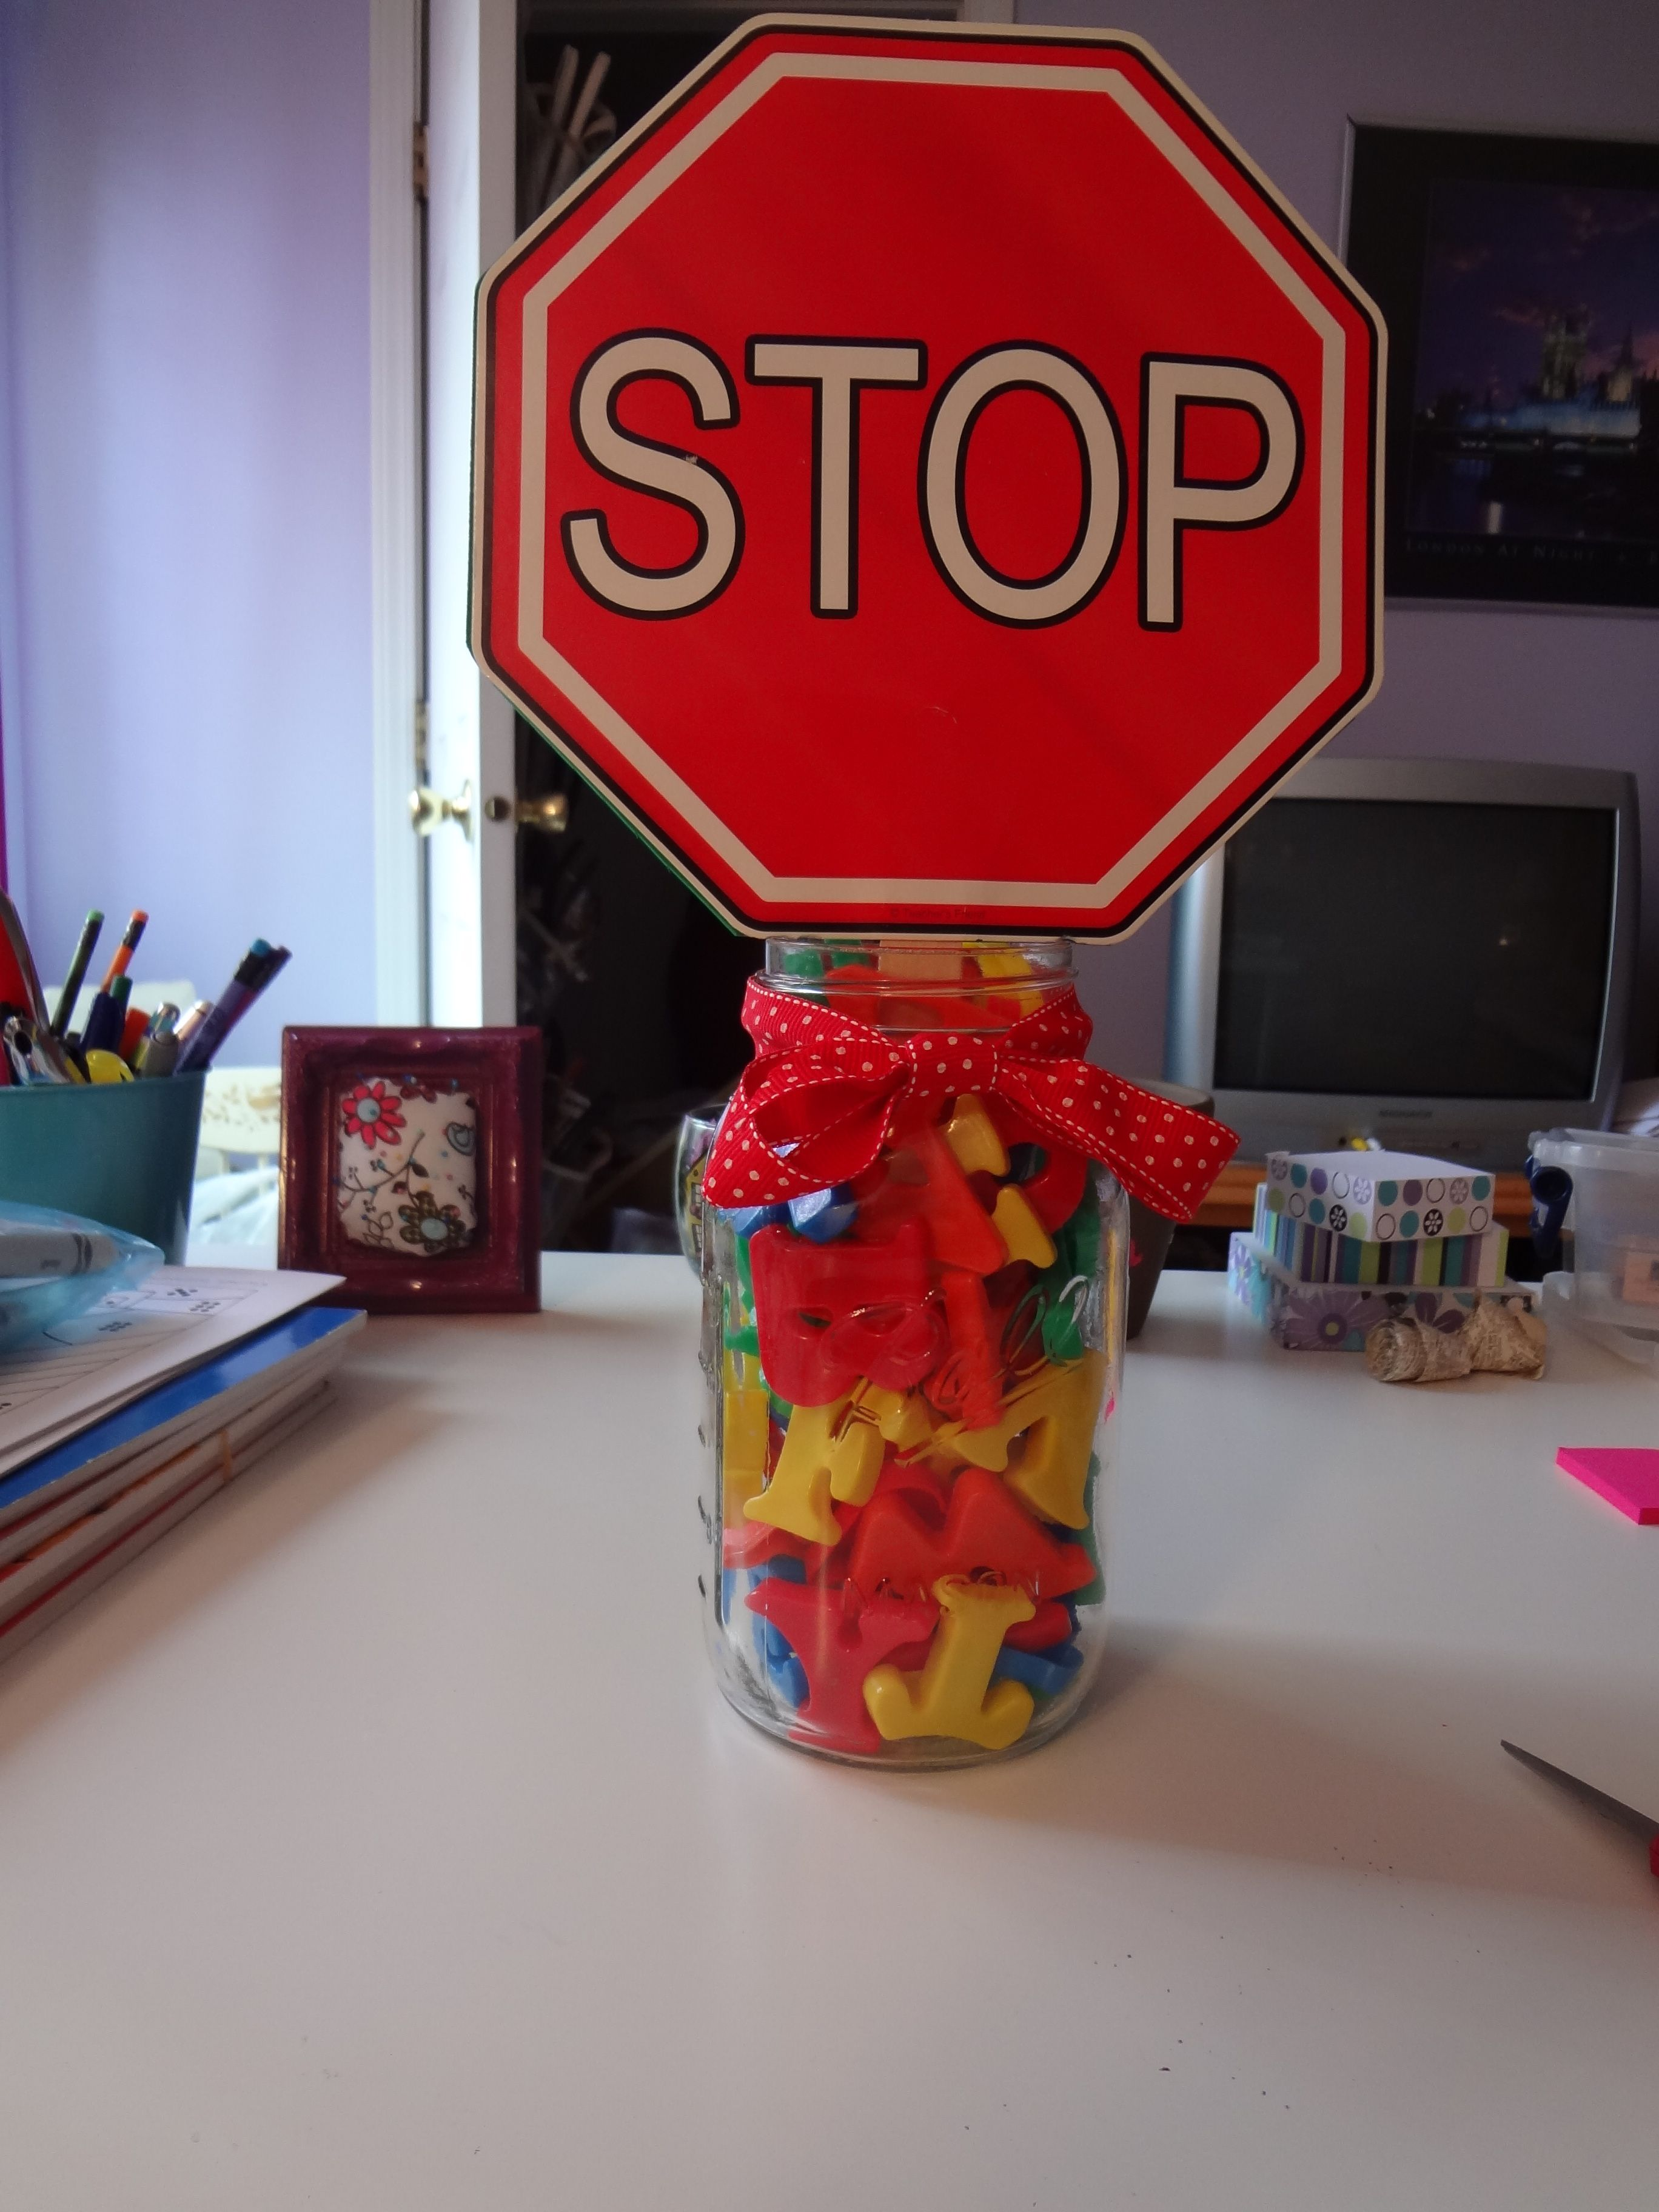 Stop sign for school letters in a ball jar